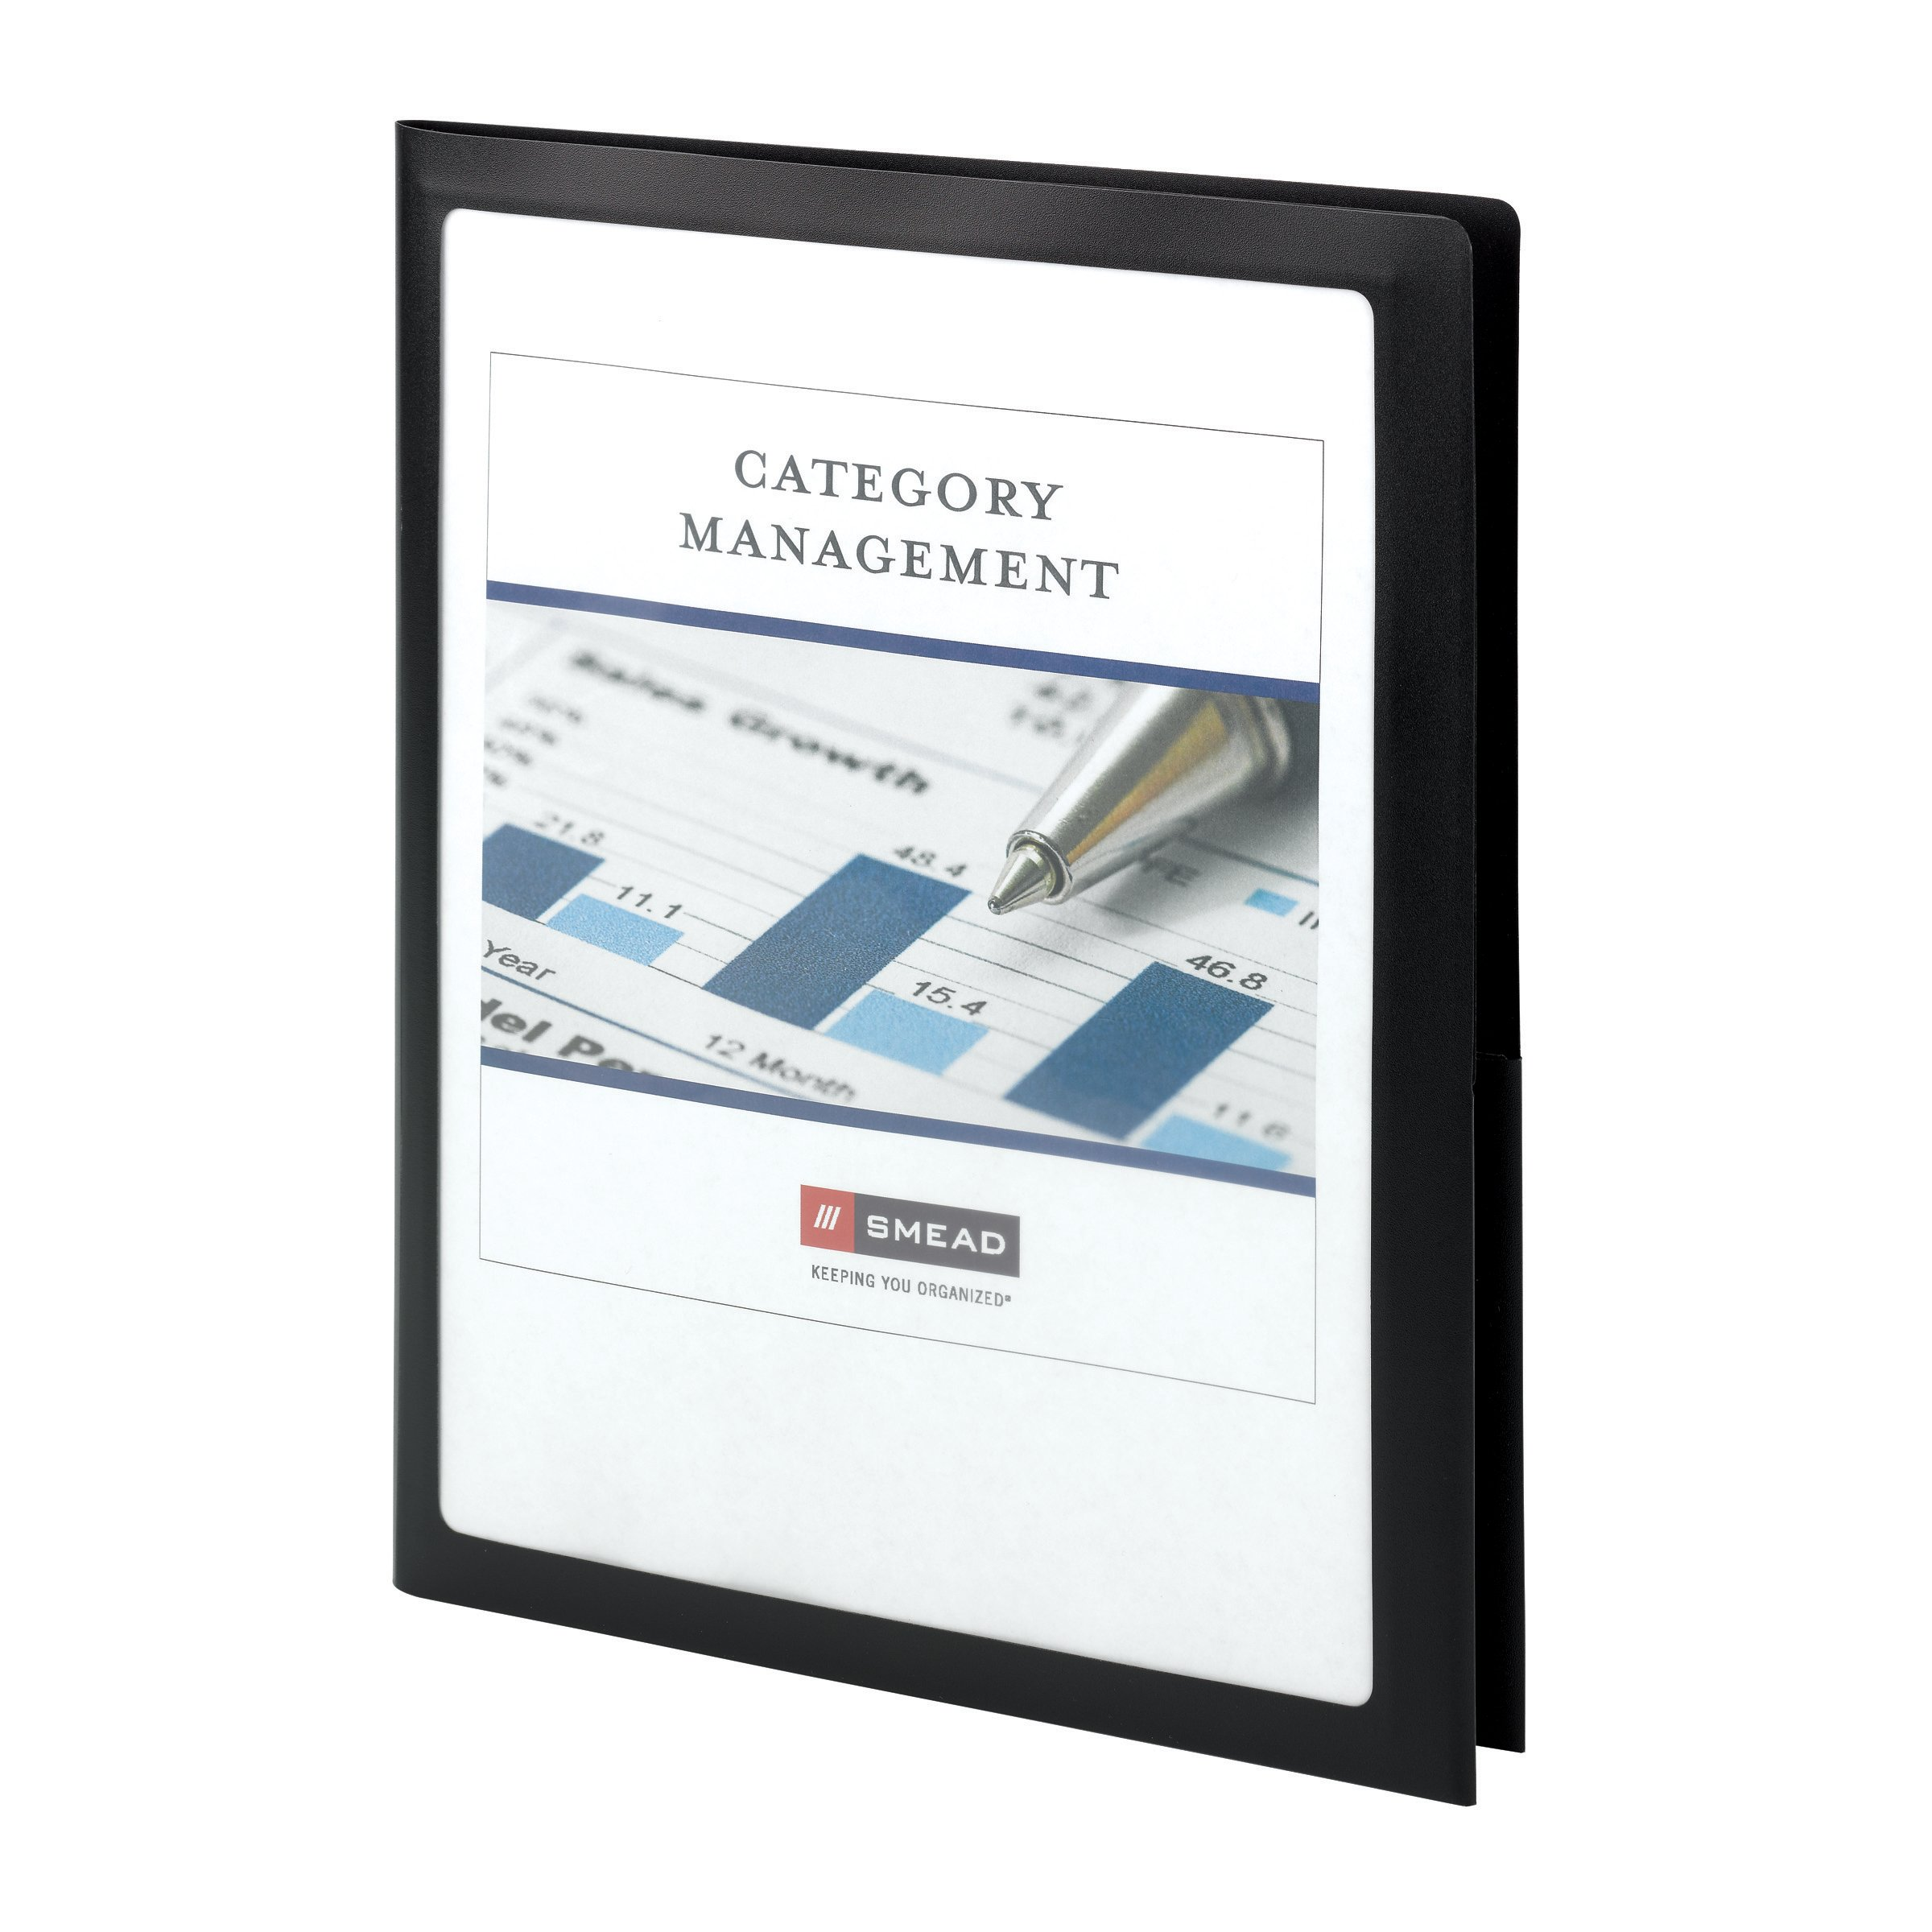 Smead Frame View Poly Two-Pocket Folder, Holds up to 100 Sheets, Letter Size, Black, 5 per Pack (87705)